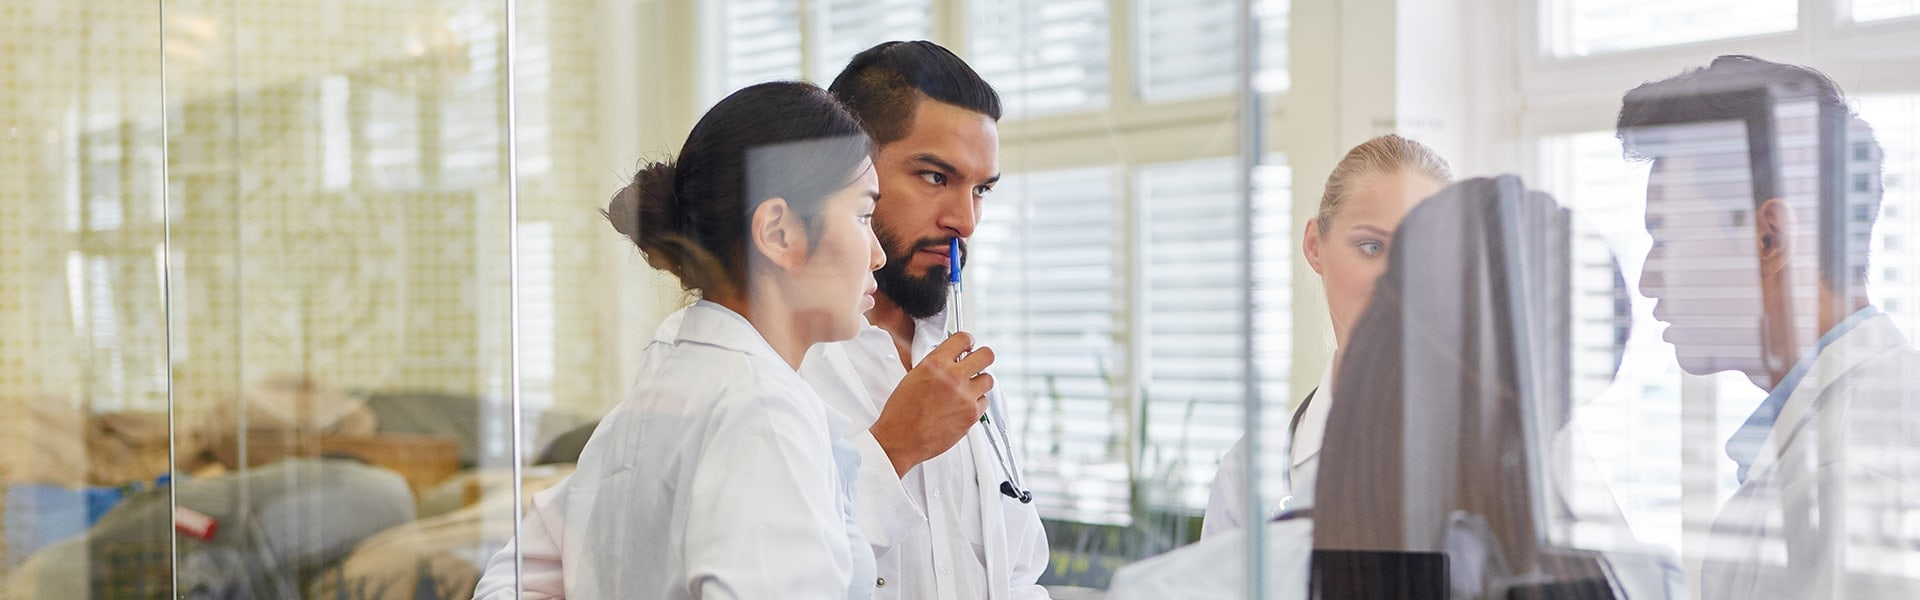 Multidisciplinary Team Participation for Audiologists News Byte Article